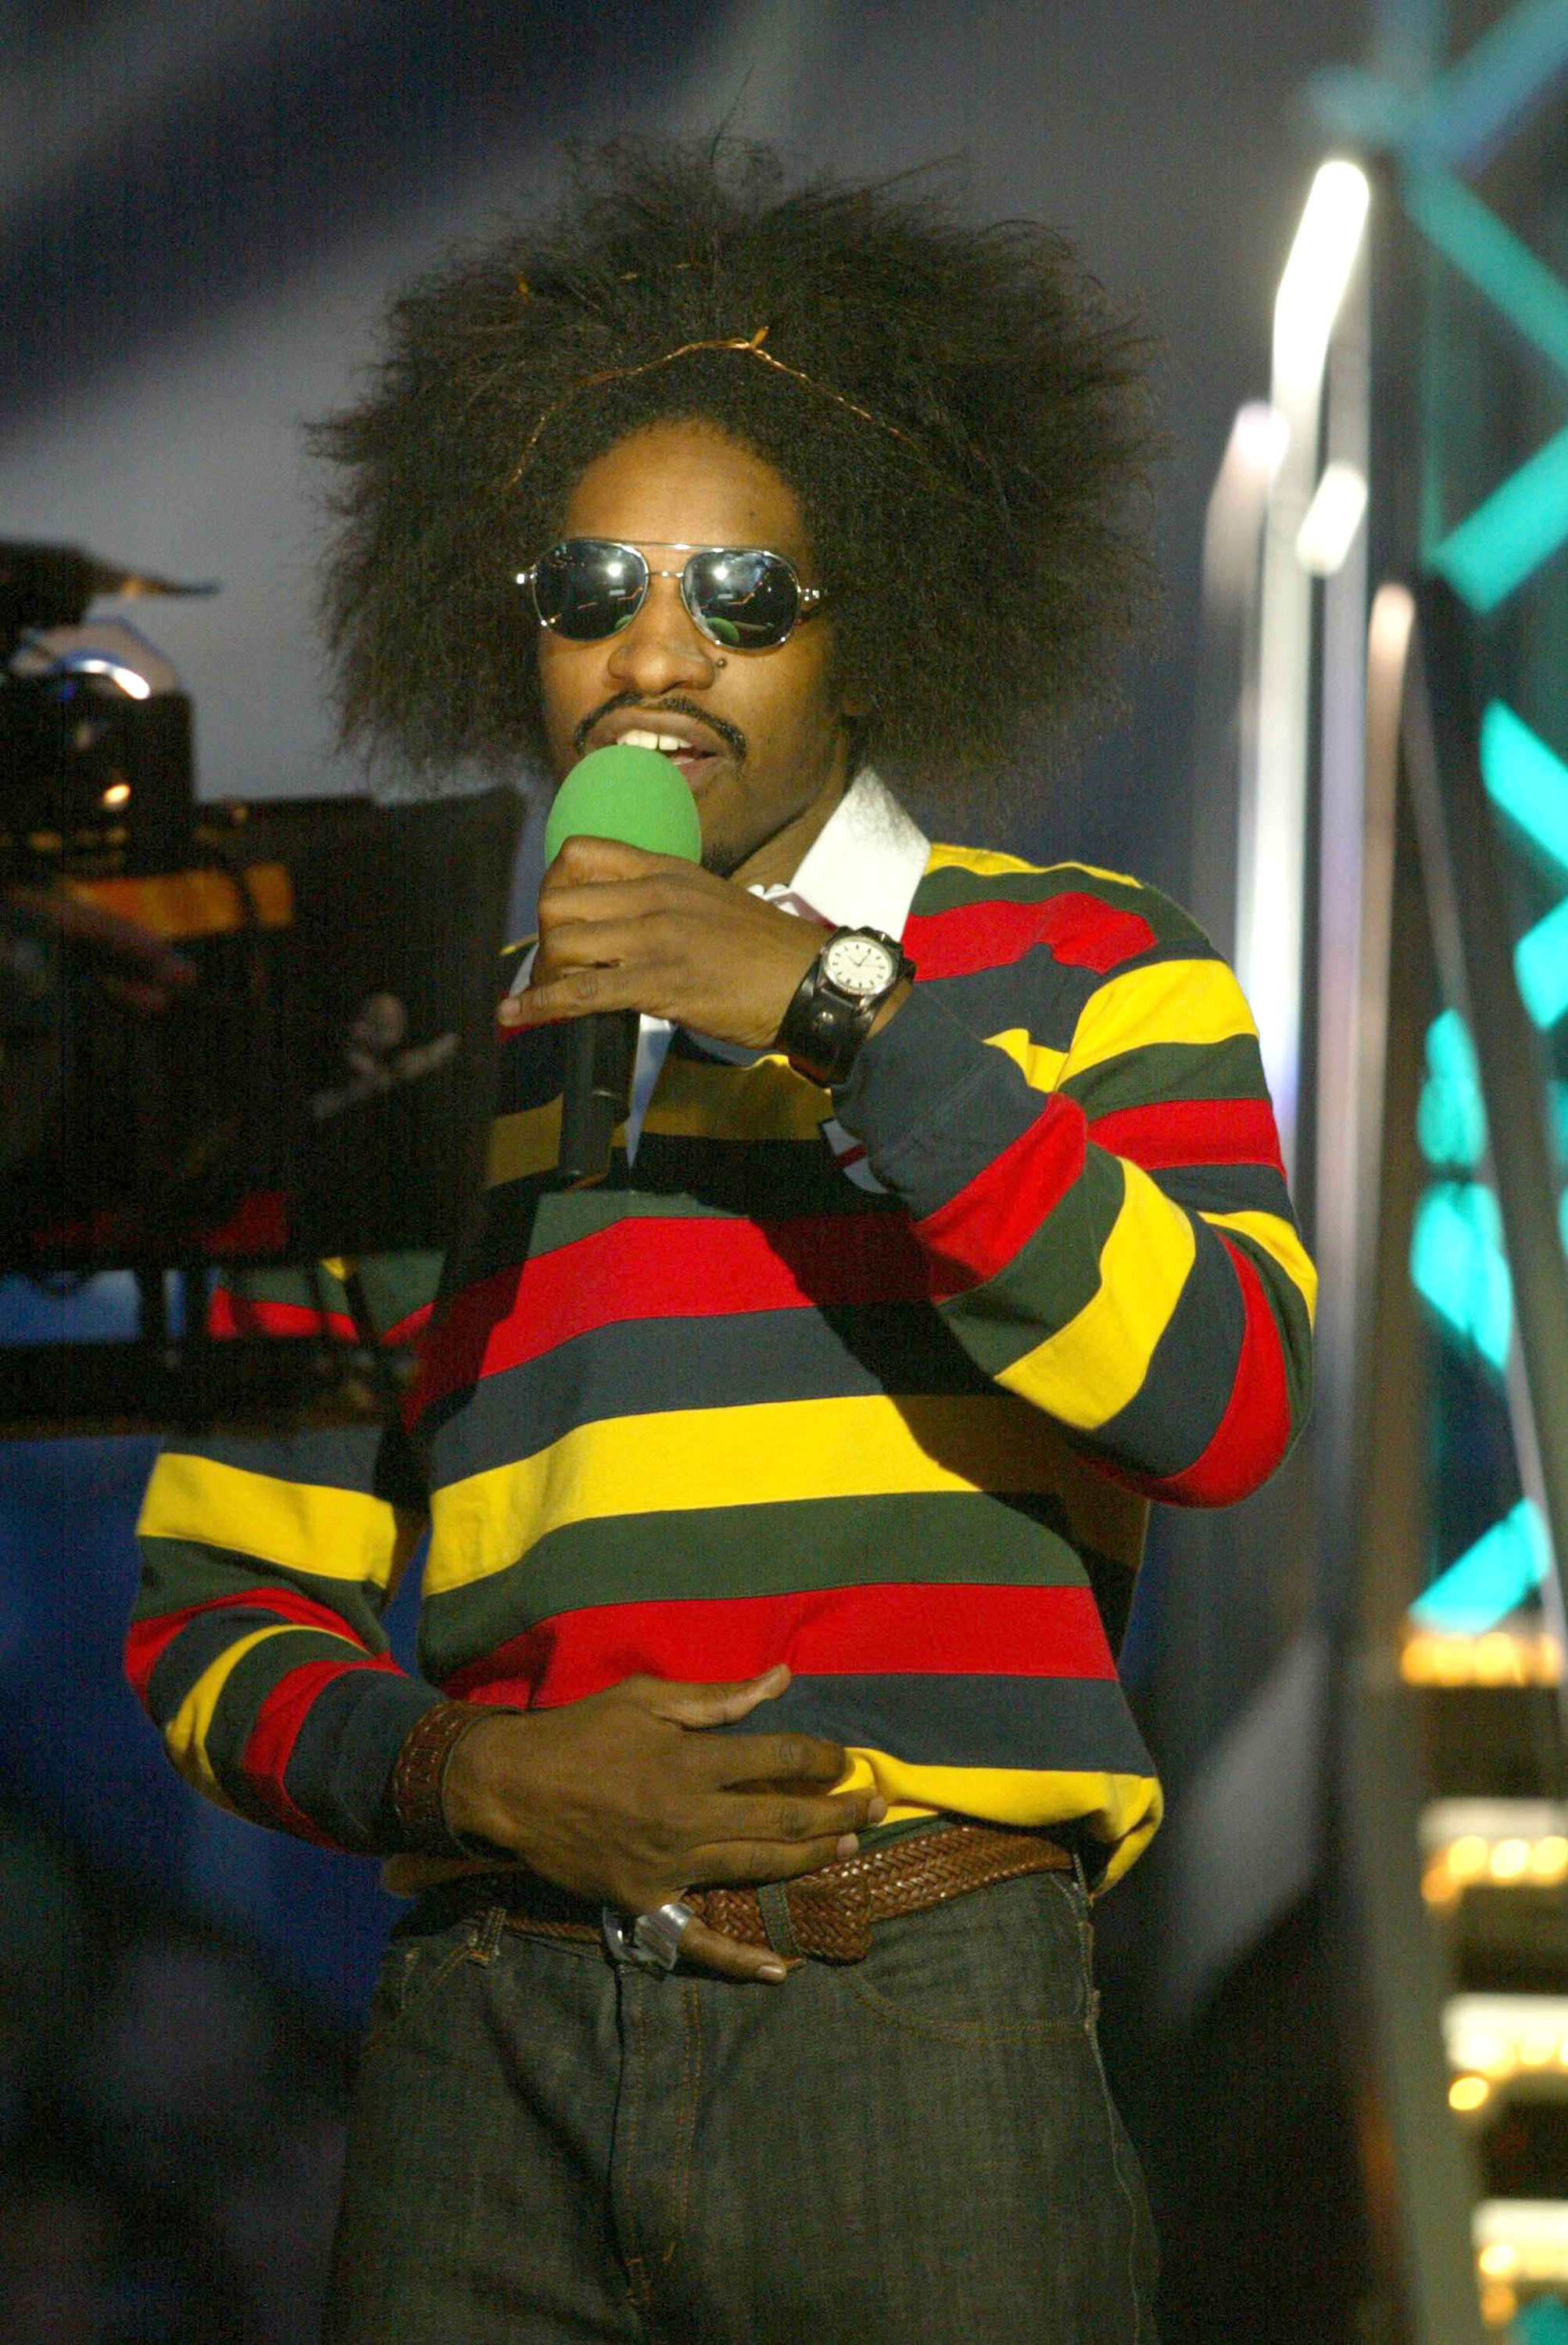 andre 3000 afro